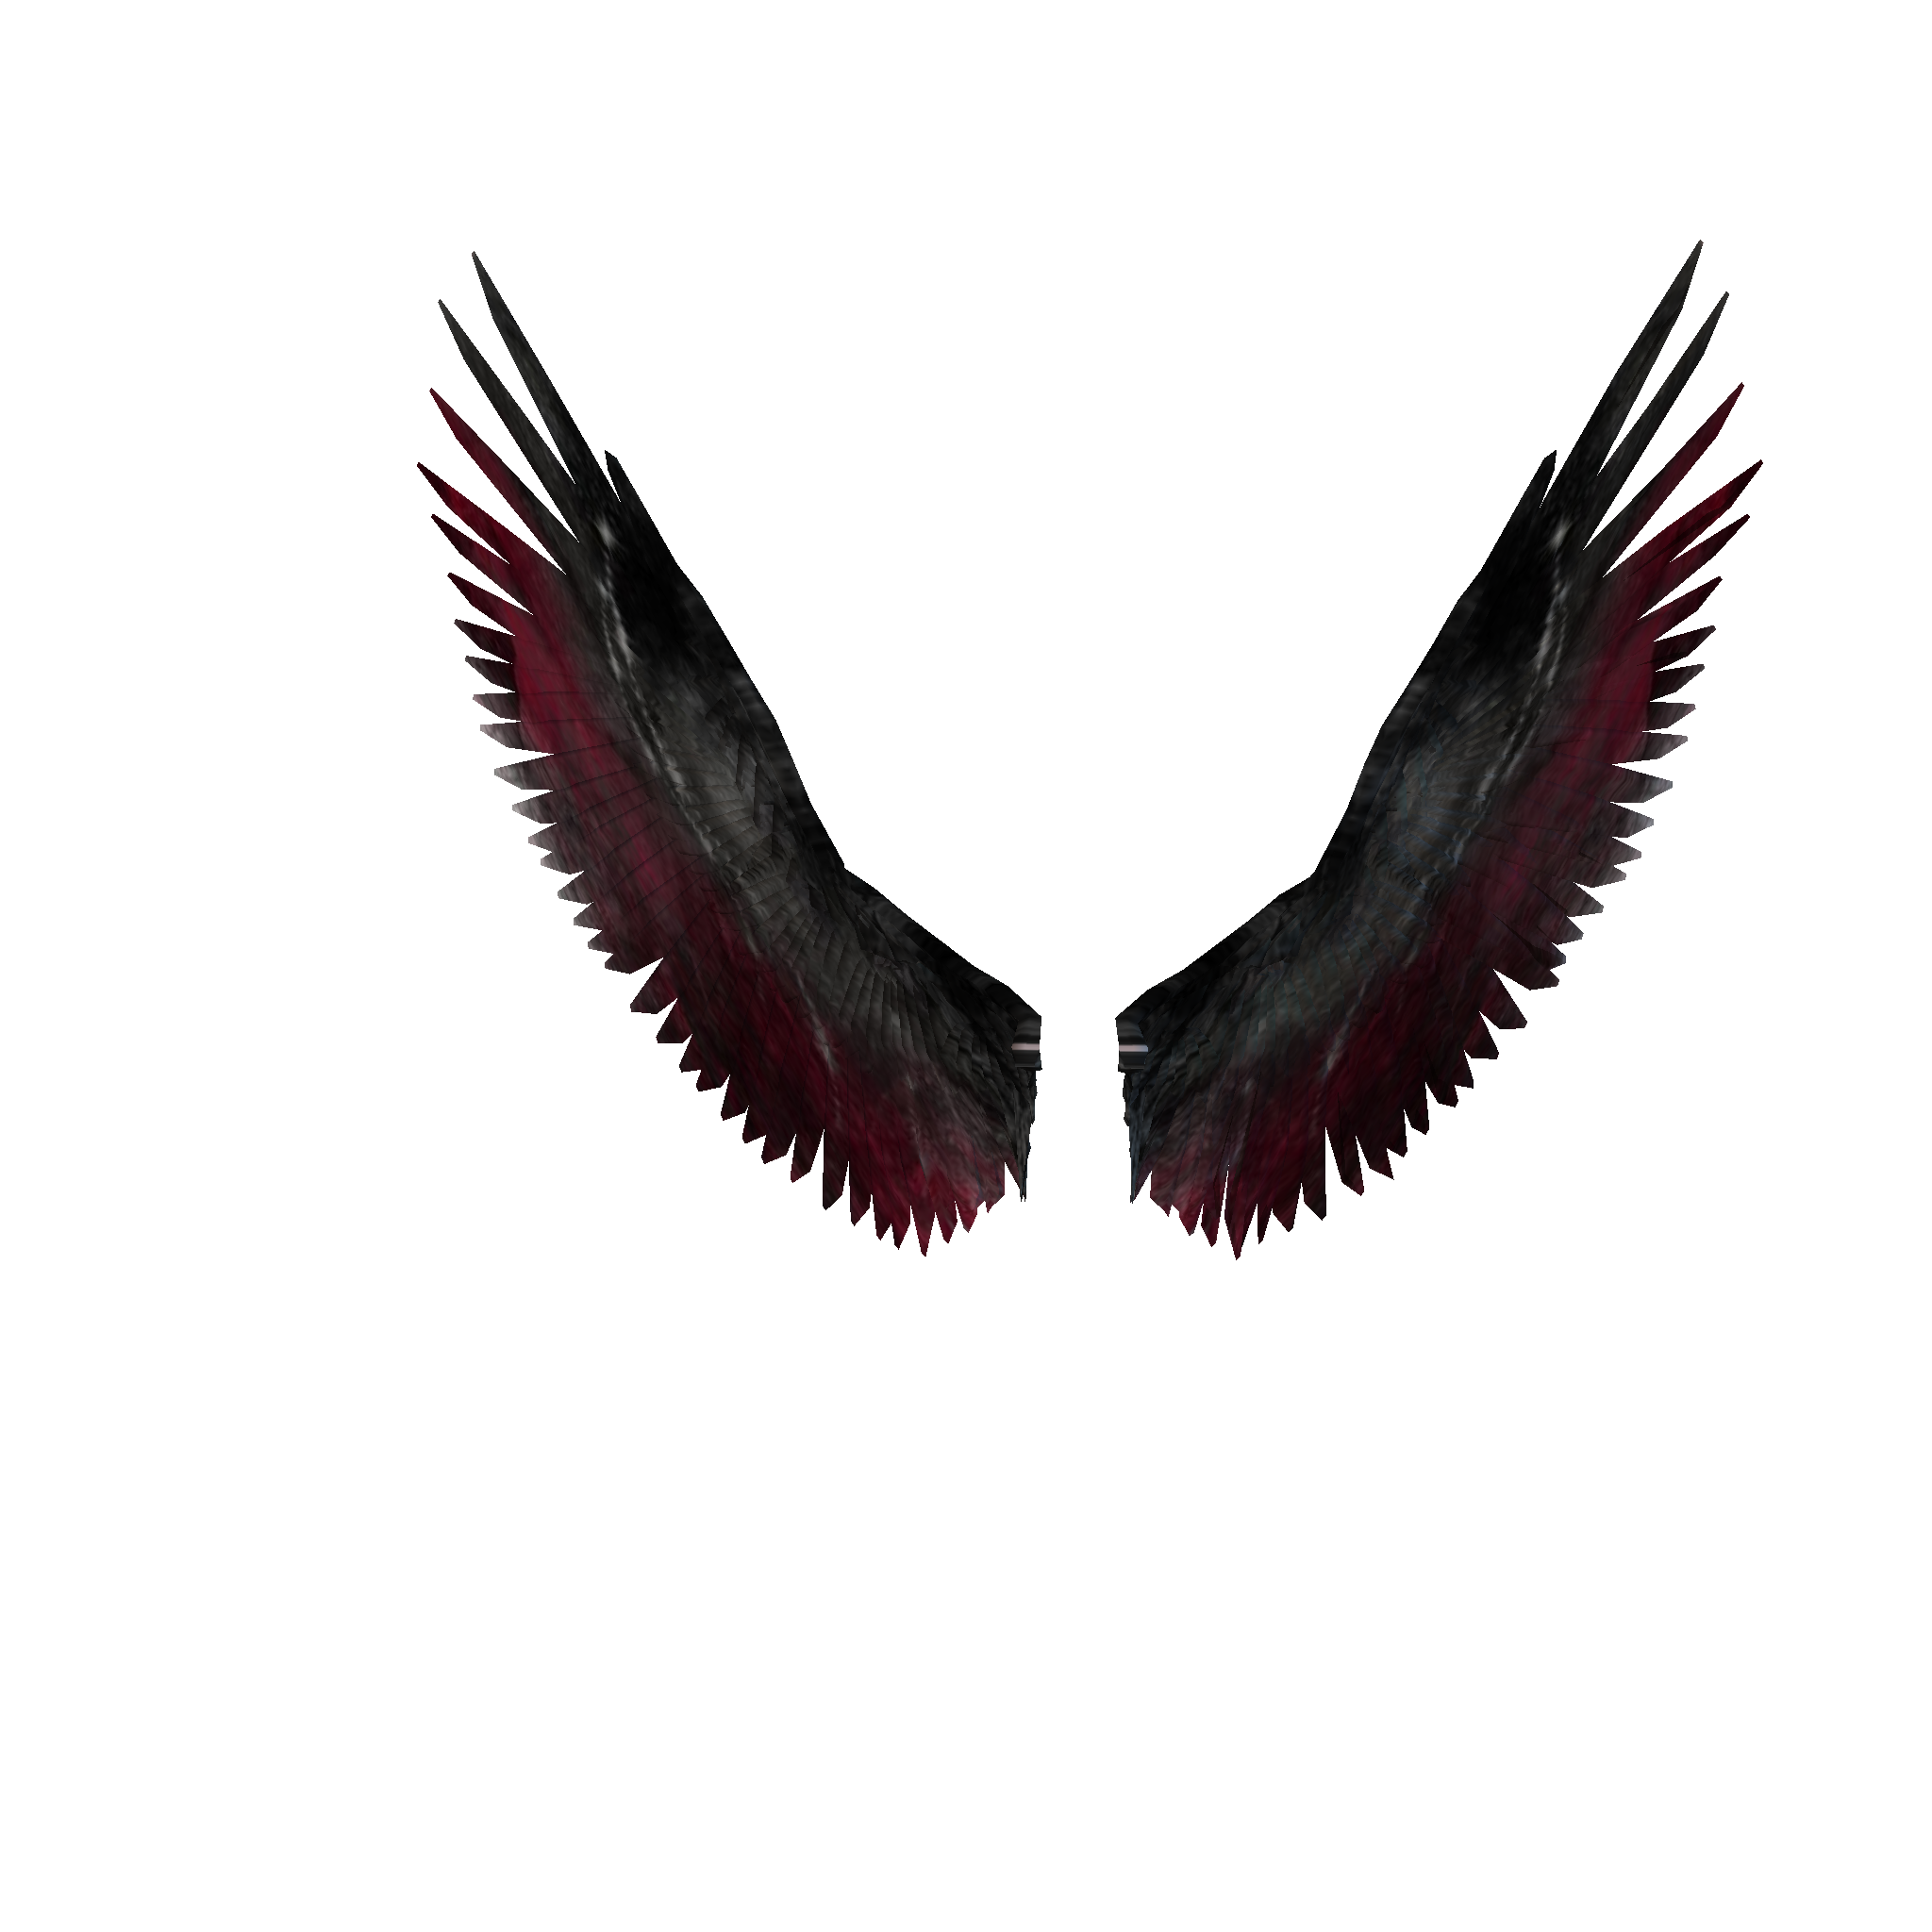 Wing clipart gothic. Wings free collection download